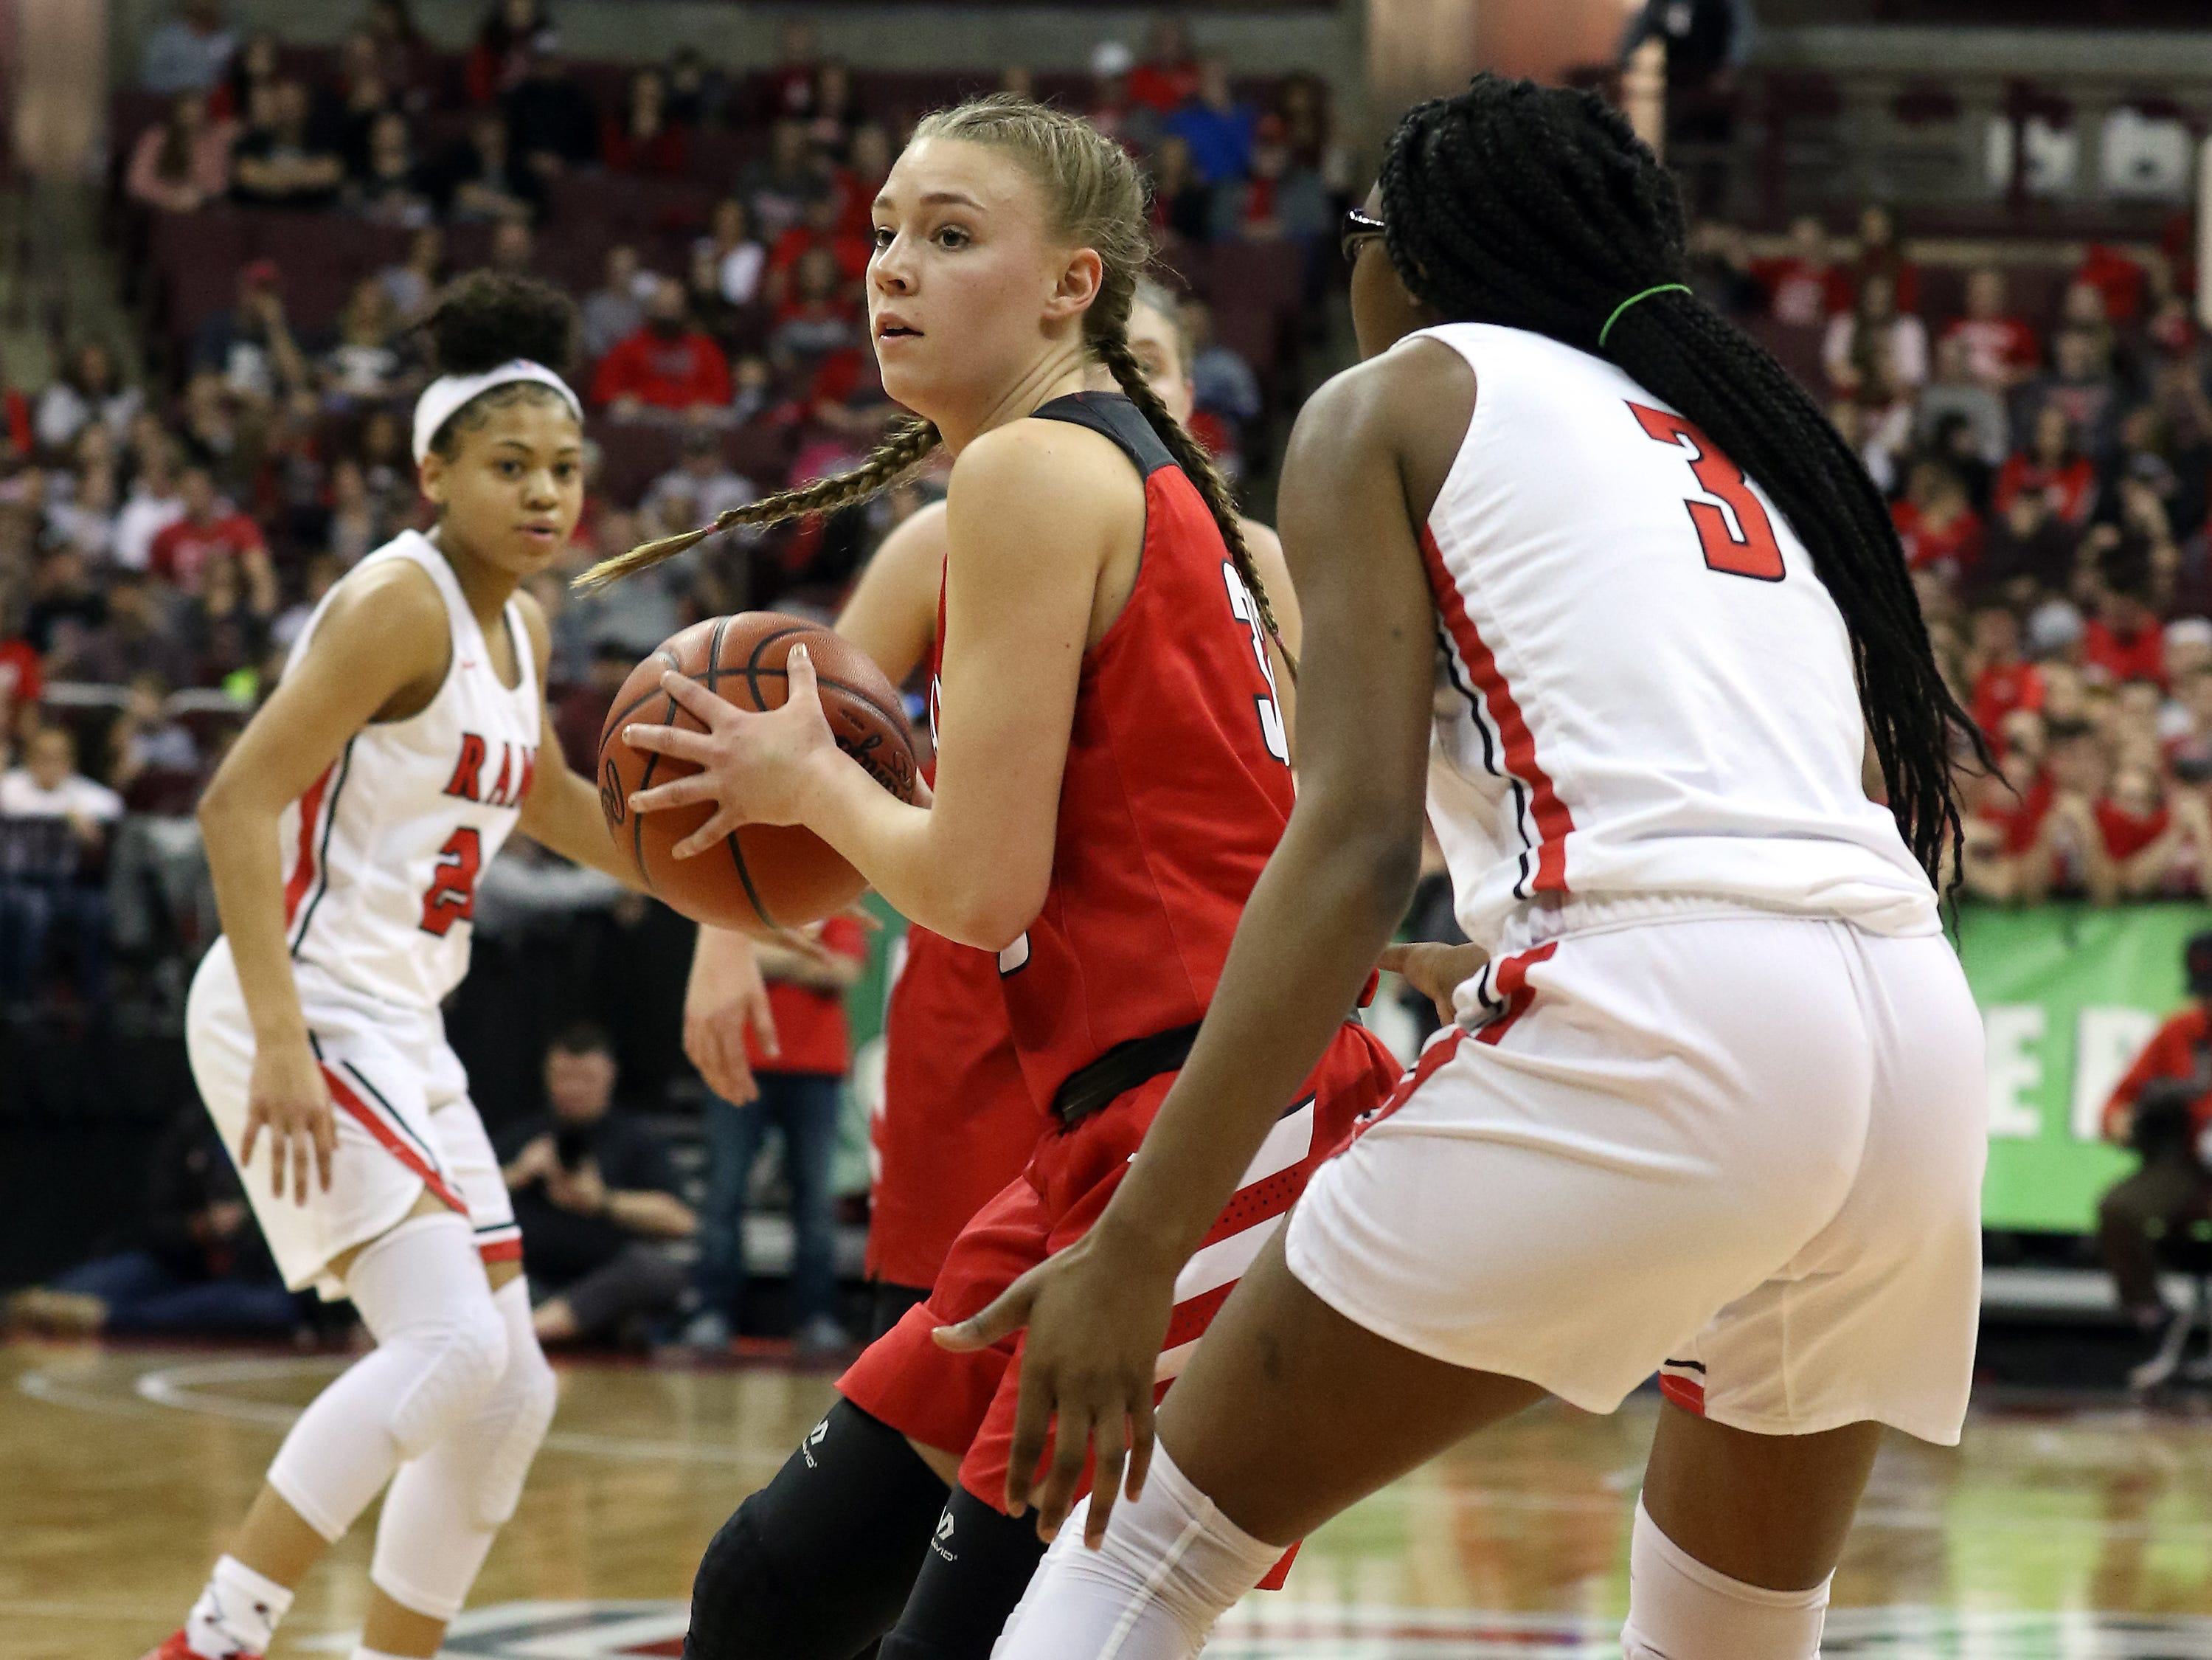 Sheridan's Emma Conrad turns toward the hoop against Toledo Rogers during the DII state semis in Columbus on Thursday.